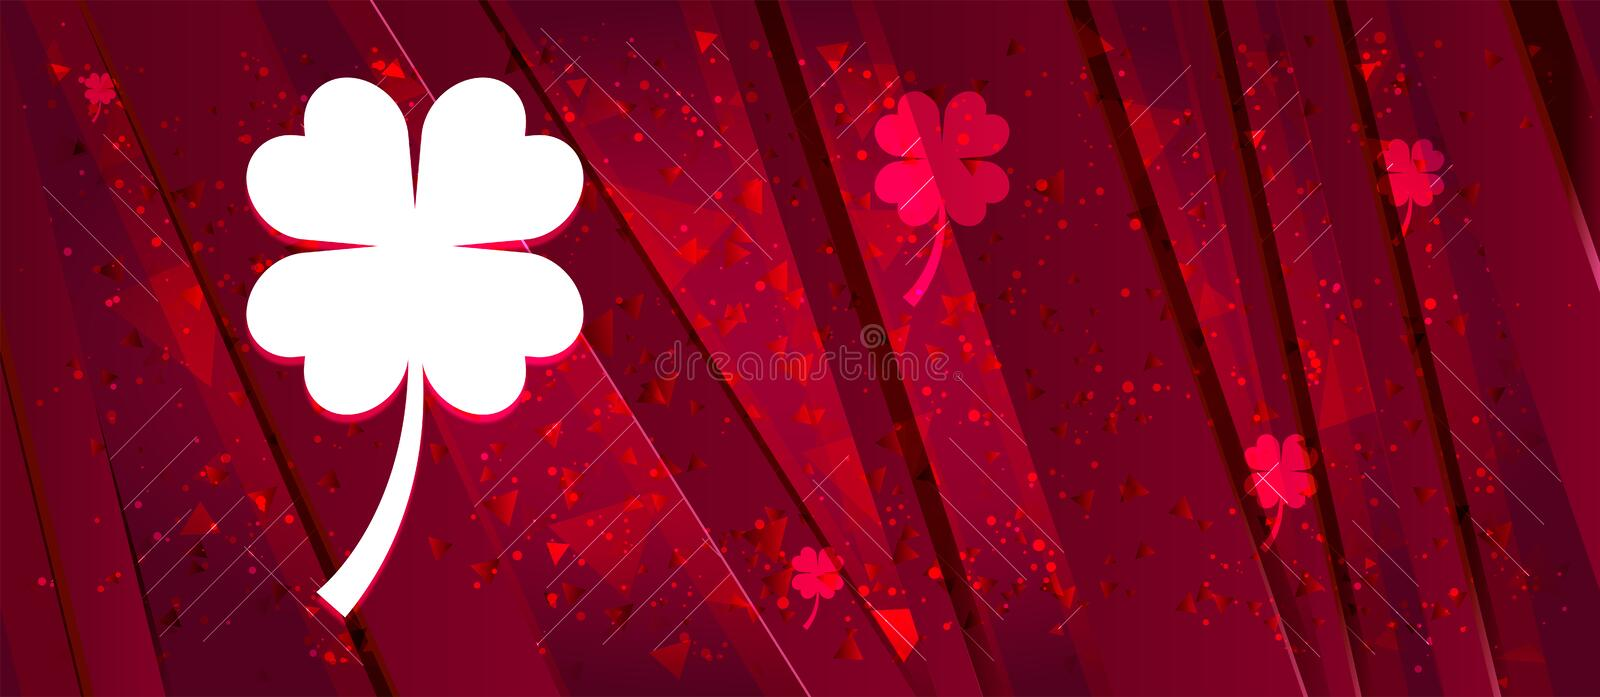 Lucky four leaf clover icon Abstract design bright red banner background. Lucky four leaf clover icon isolated on Abstract design bright red banner background royalty free illustration